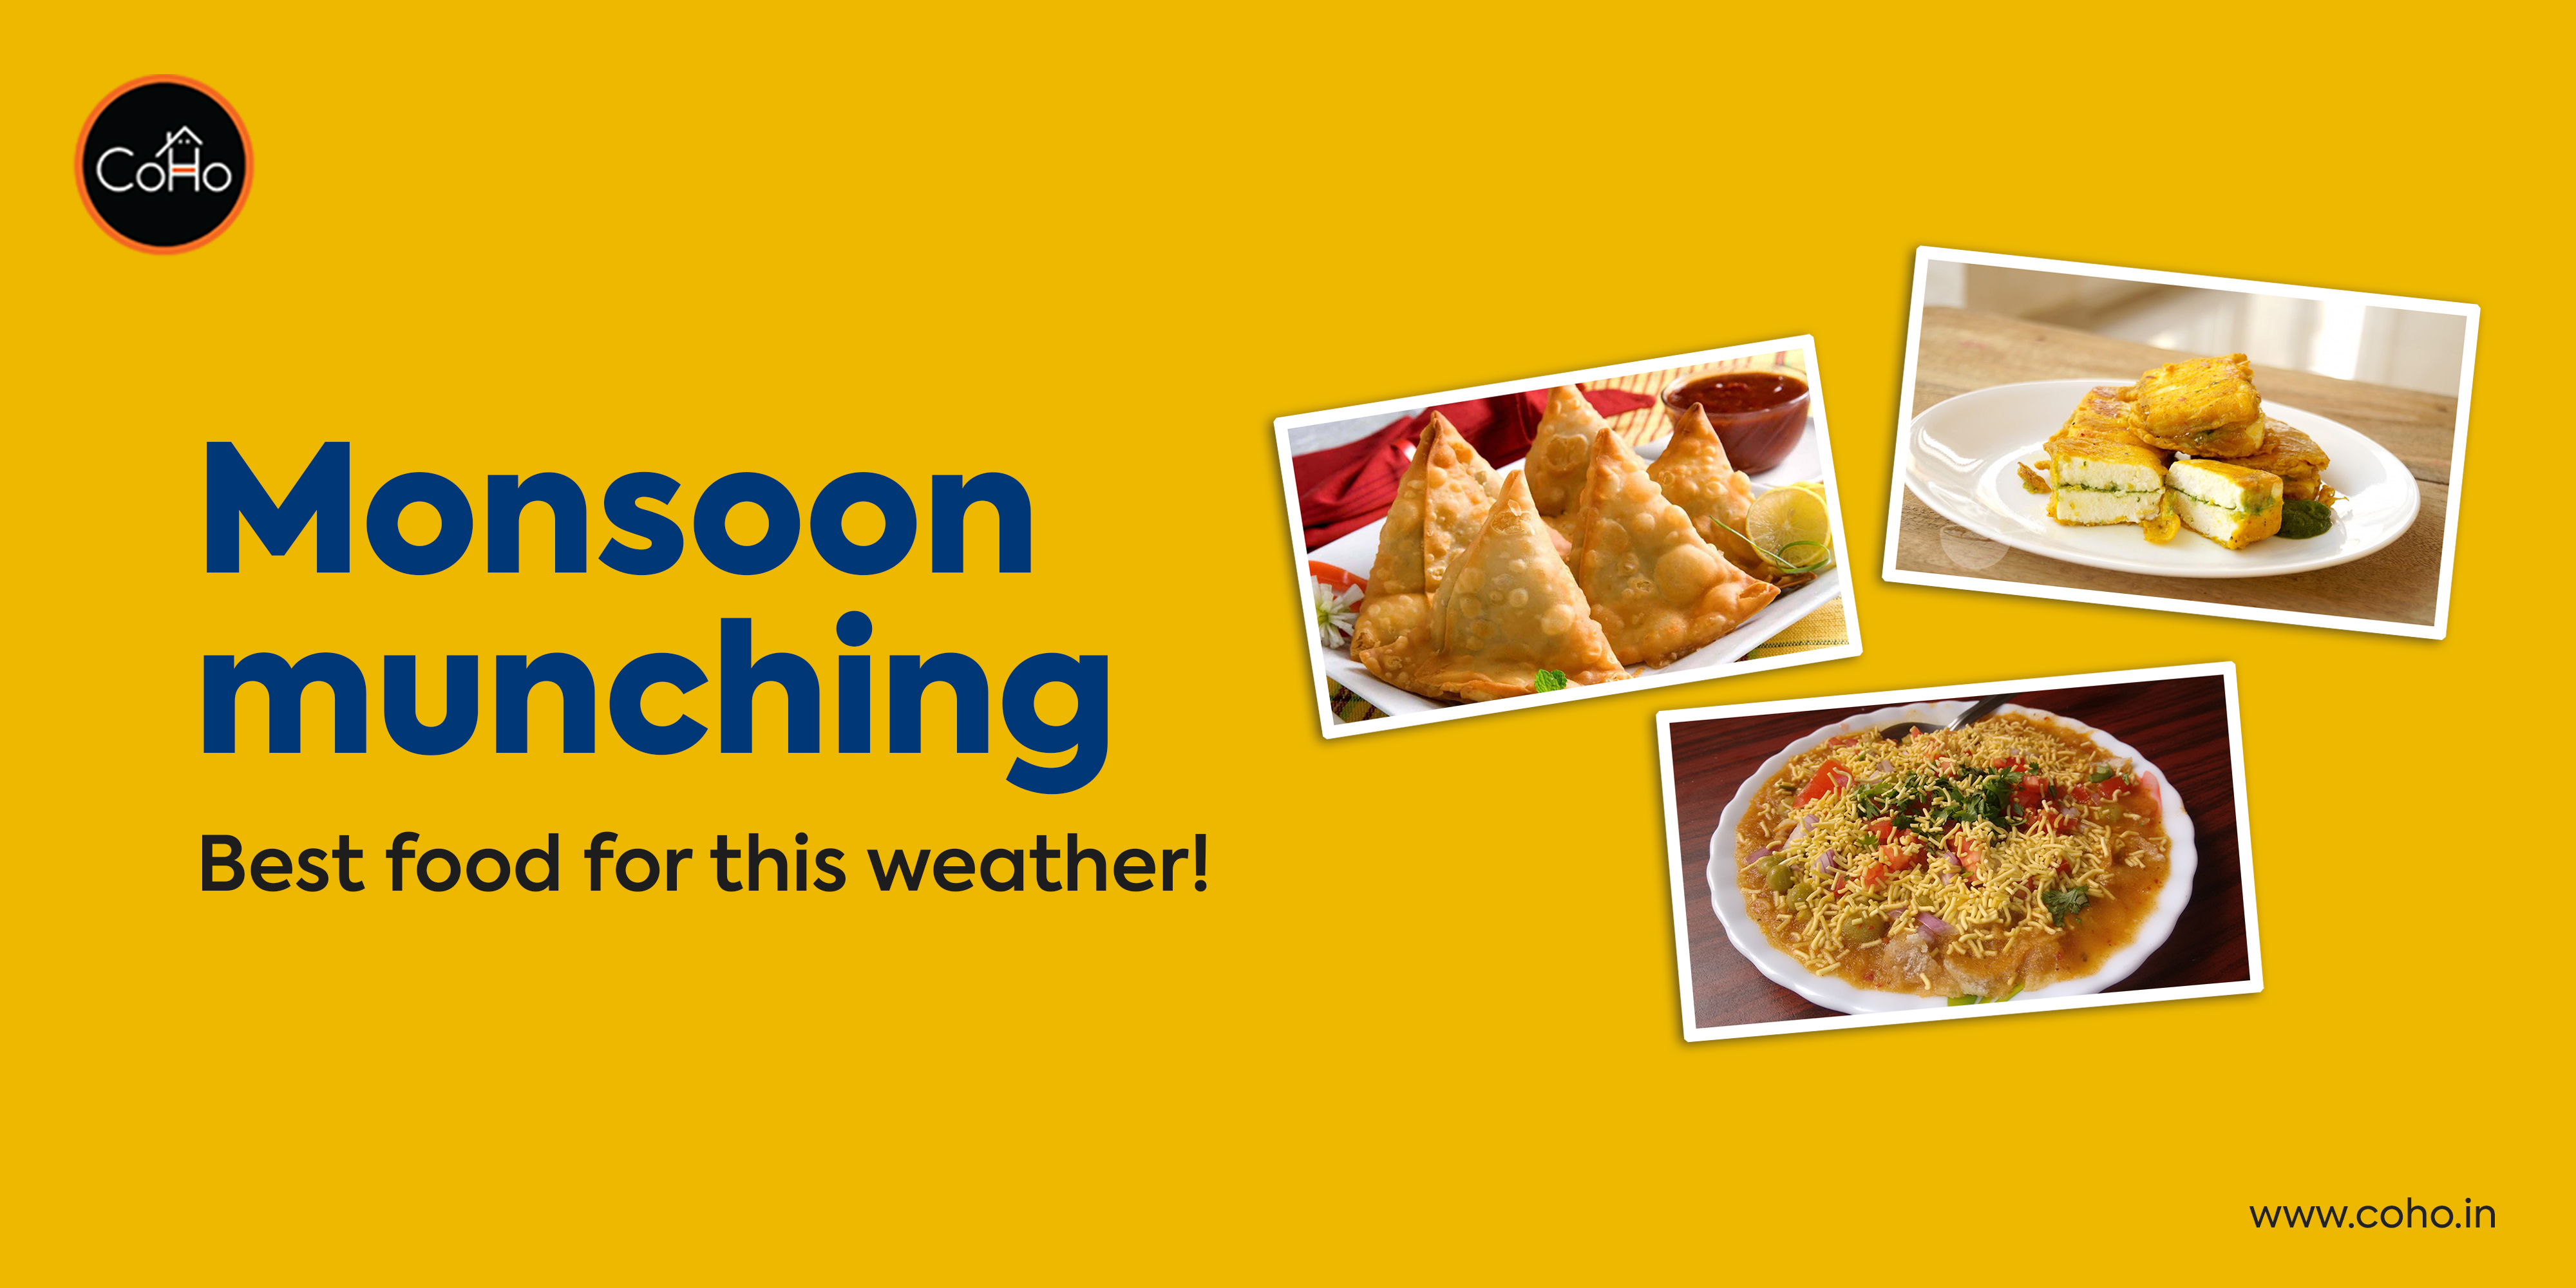 Monsoon munching - Best food for this weather!